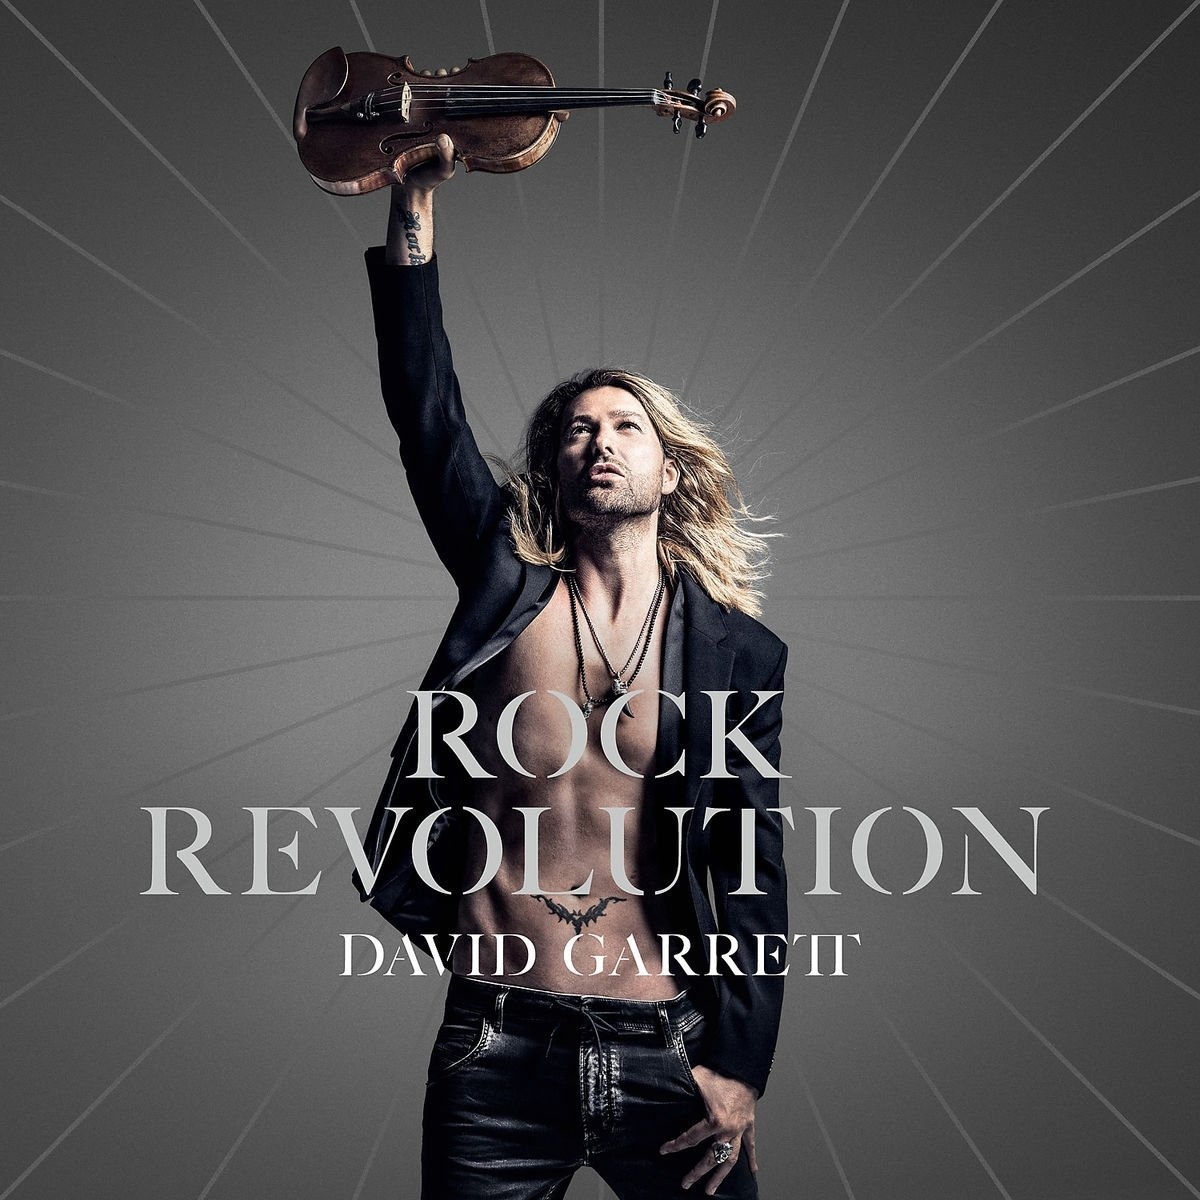 David-Garrett-Rock-Revolution-cover.jpg